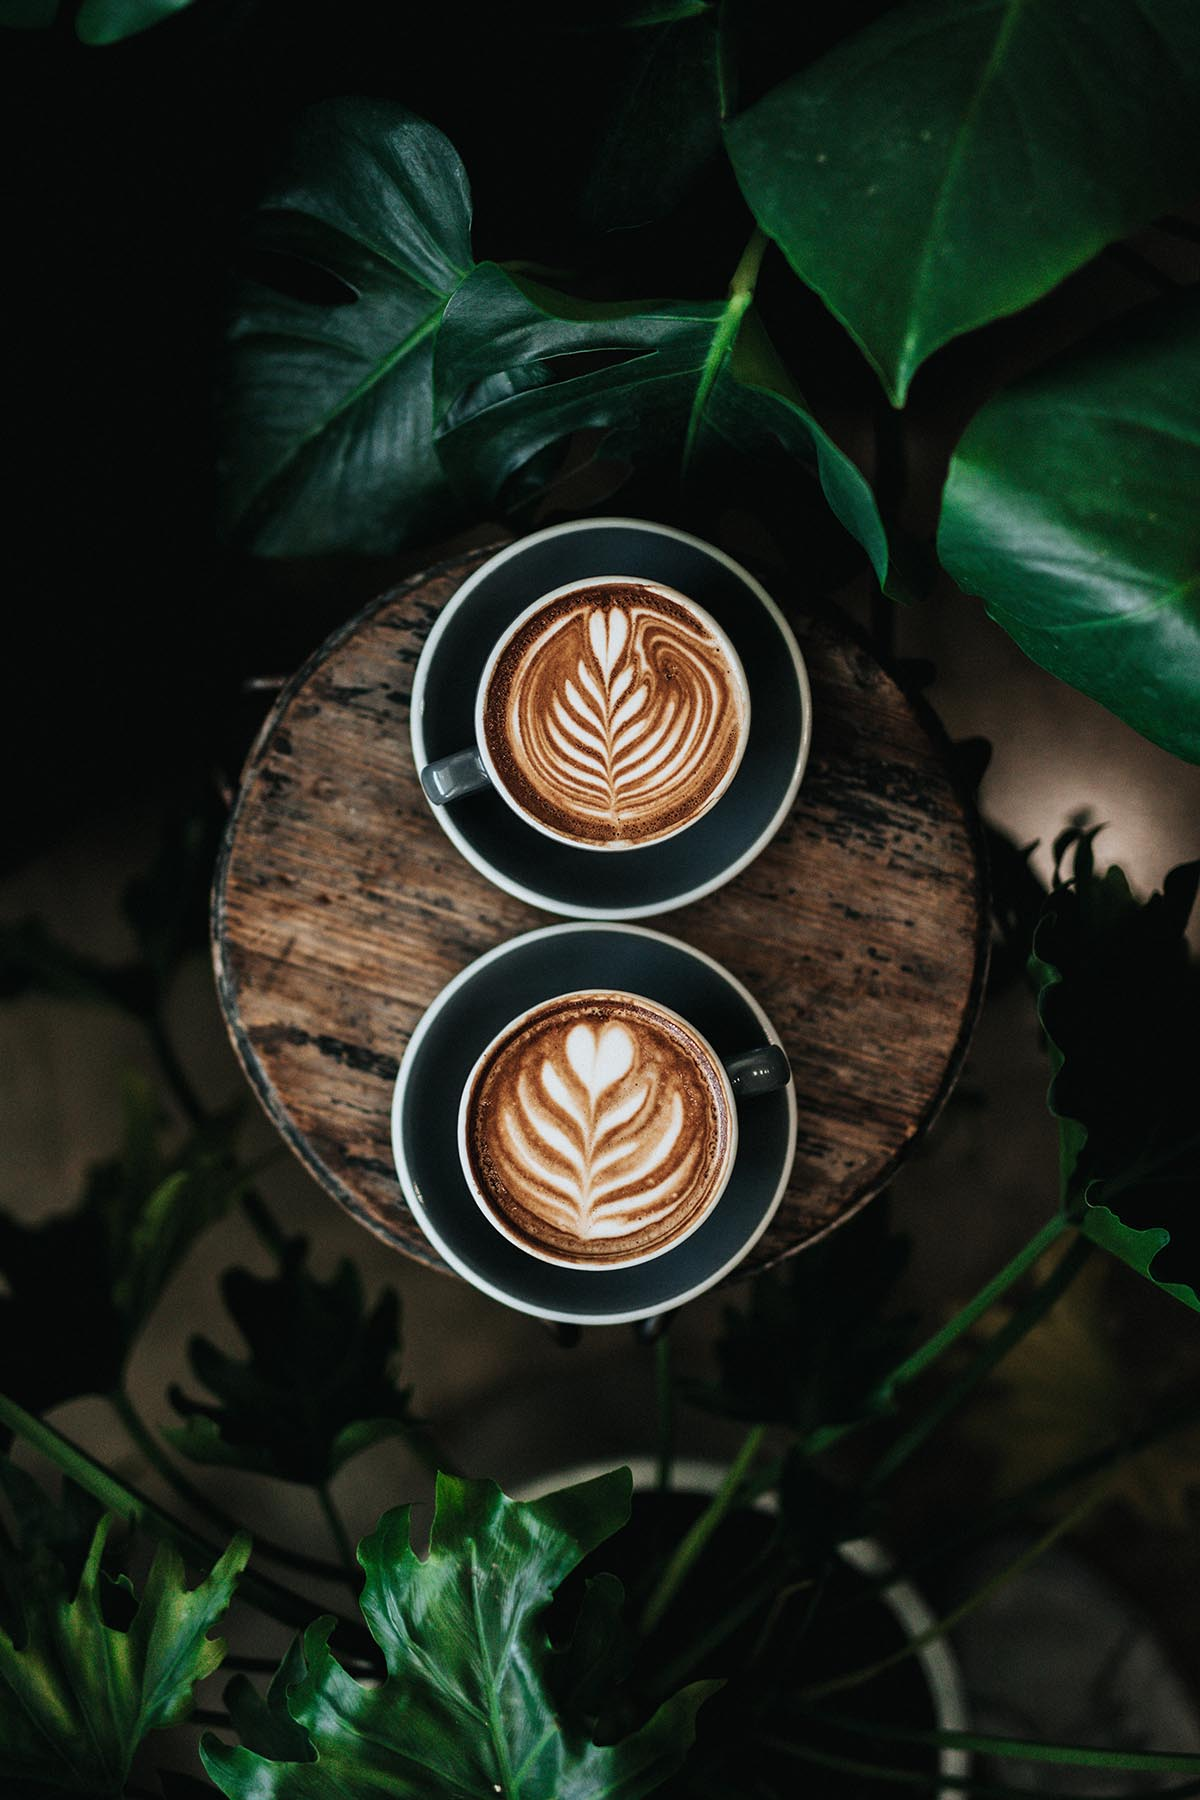 An overhead shot of two cappuccinos with flower designs in the foam against a dark wooden background.